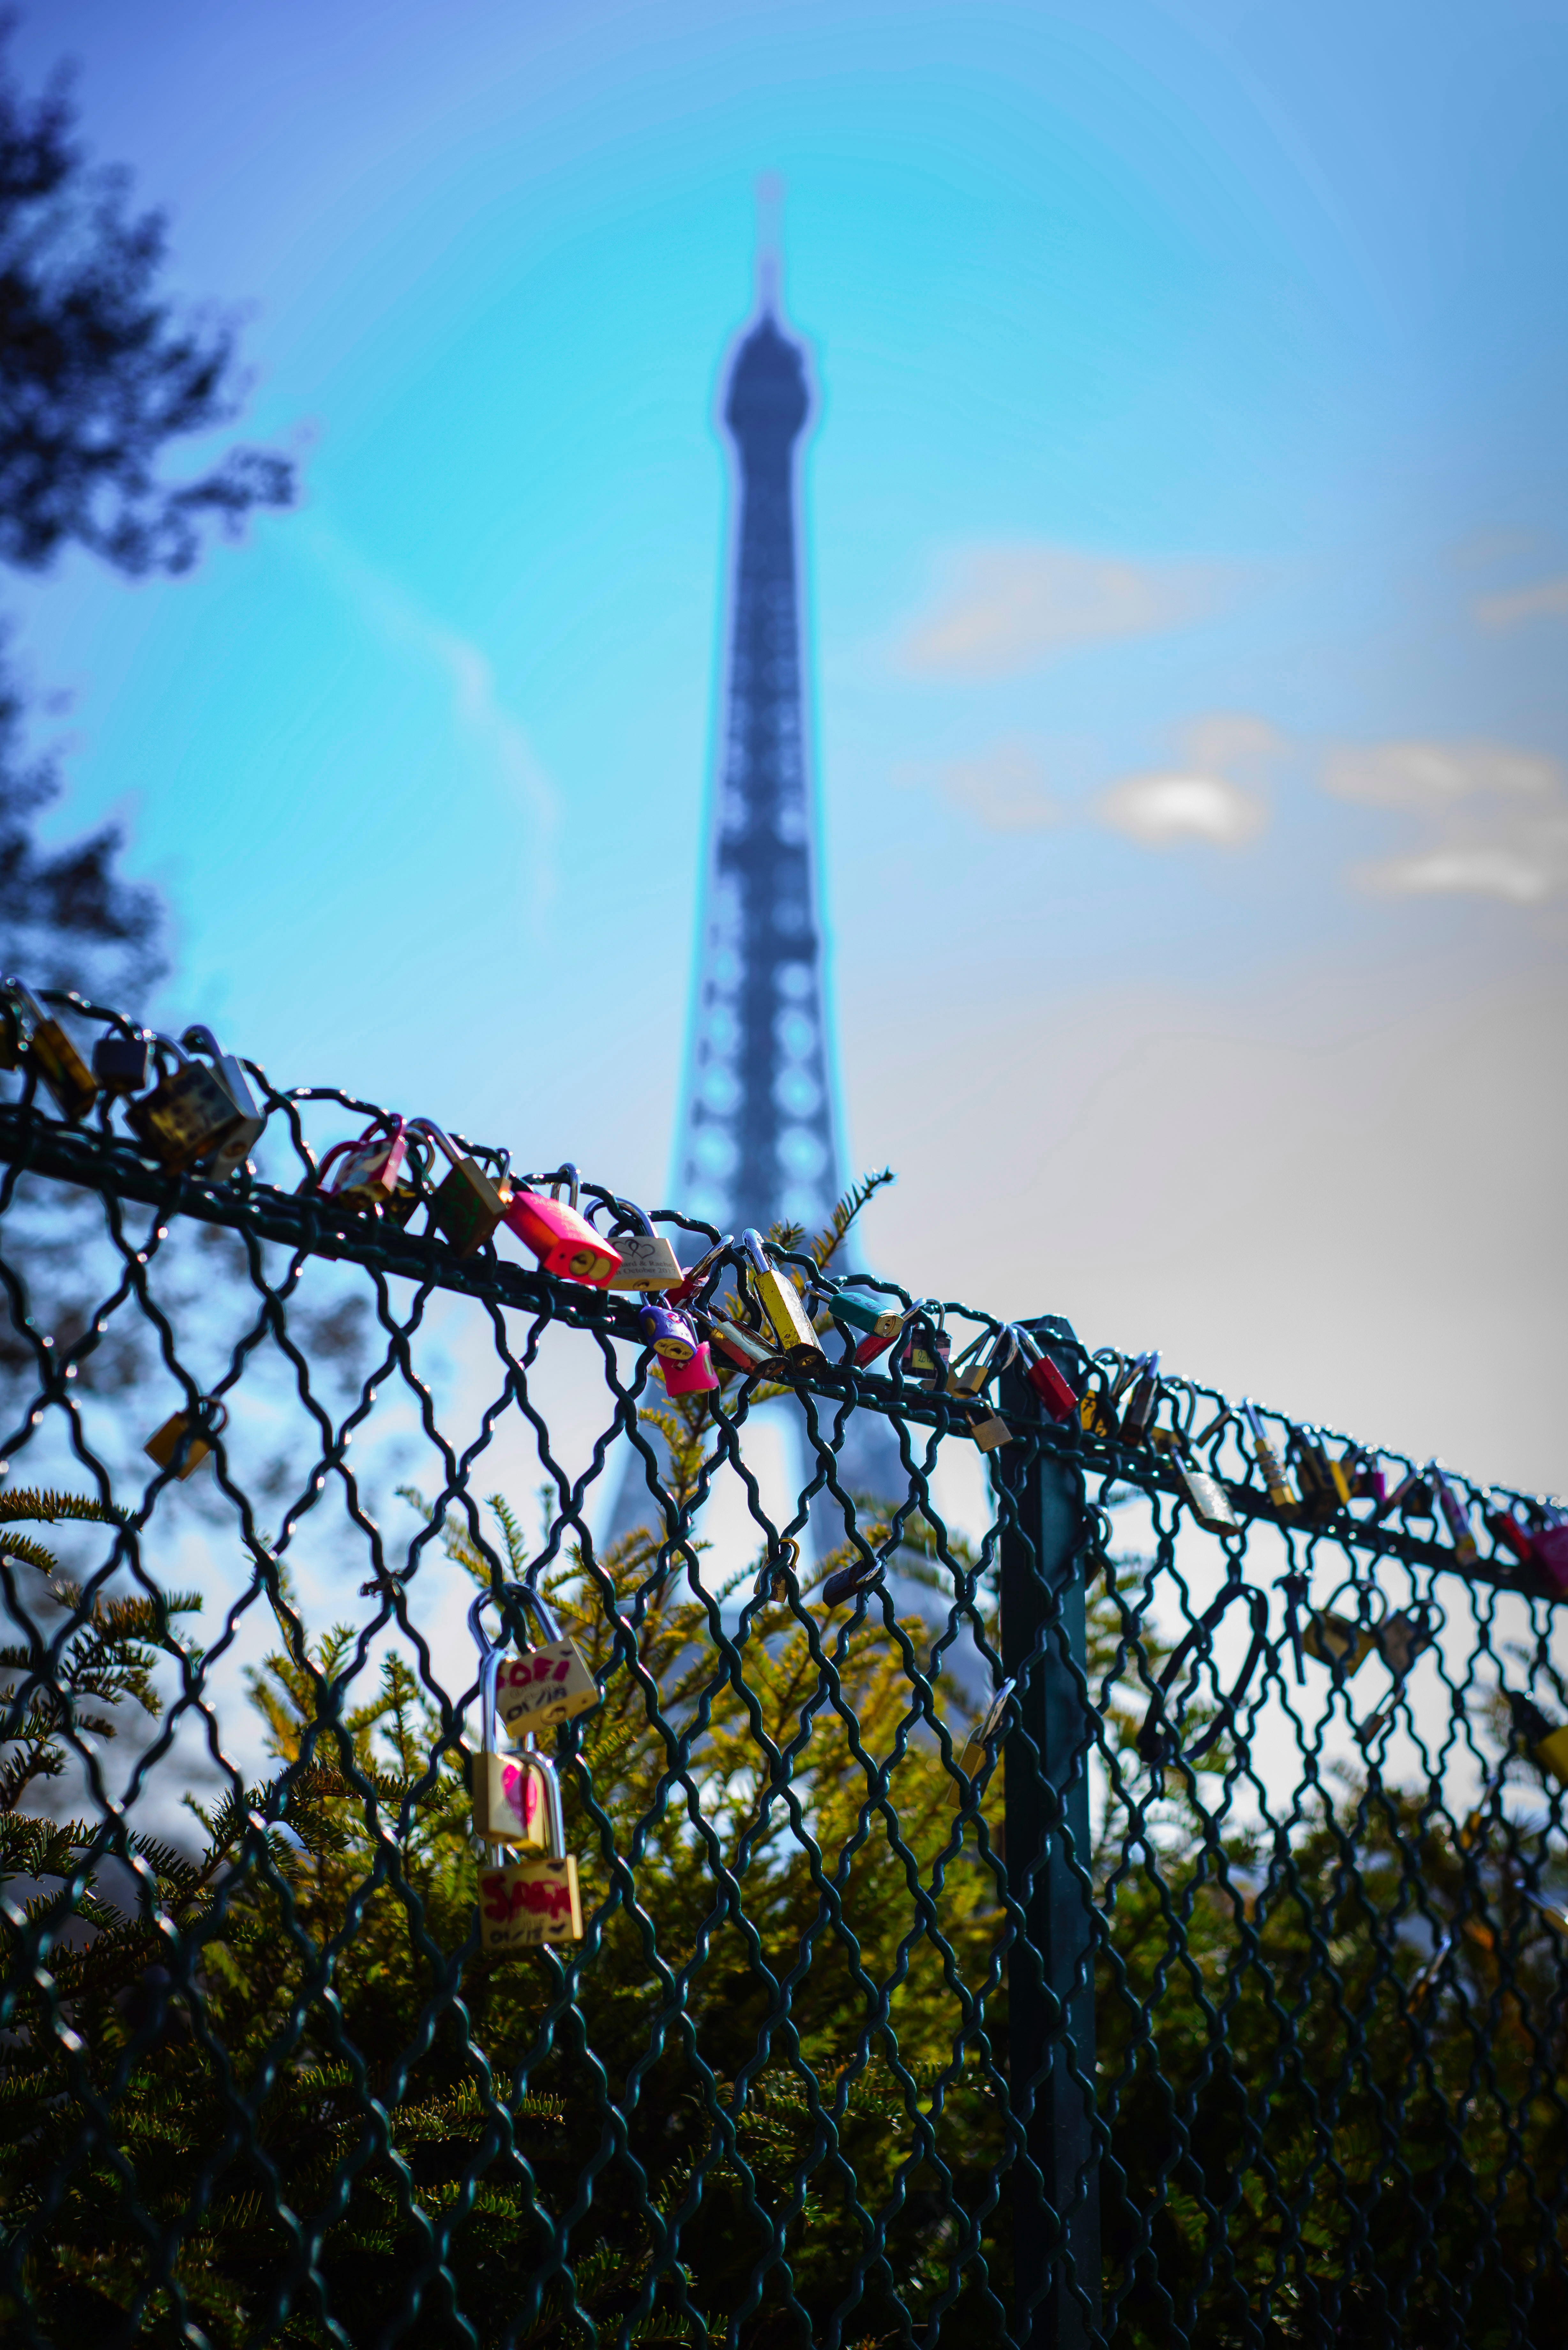 Depth of Field Photography of Love Keys on Chain Link Fence in Front of Eiffel Tower, Architecture, Landscape, Trees, Tower, HQ Photo